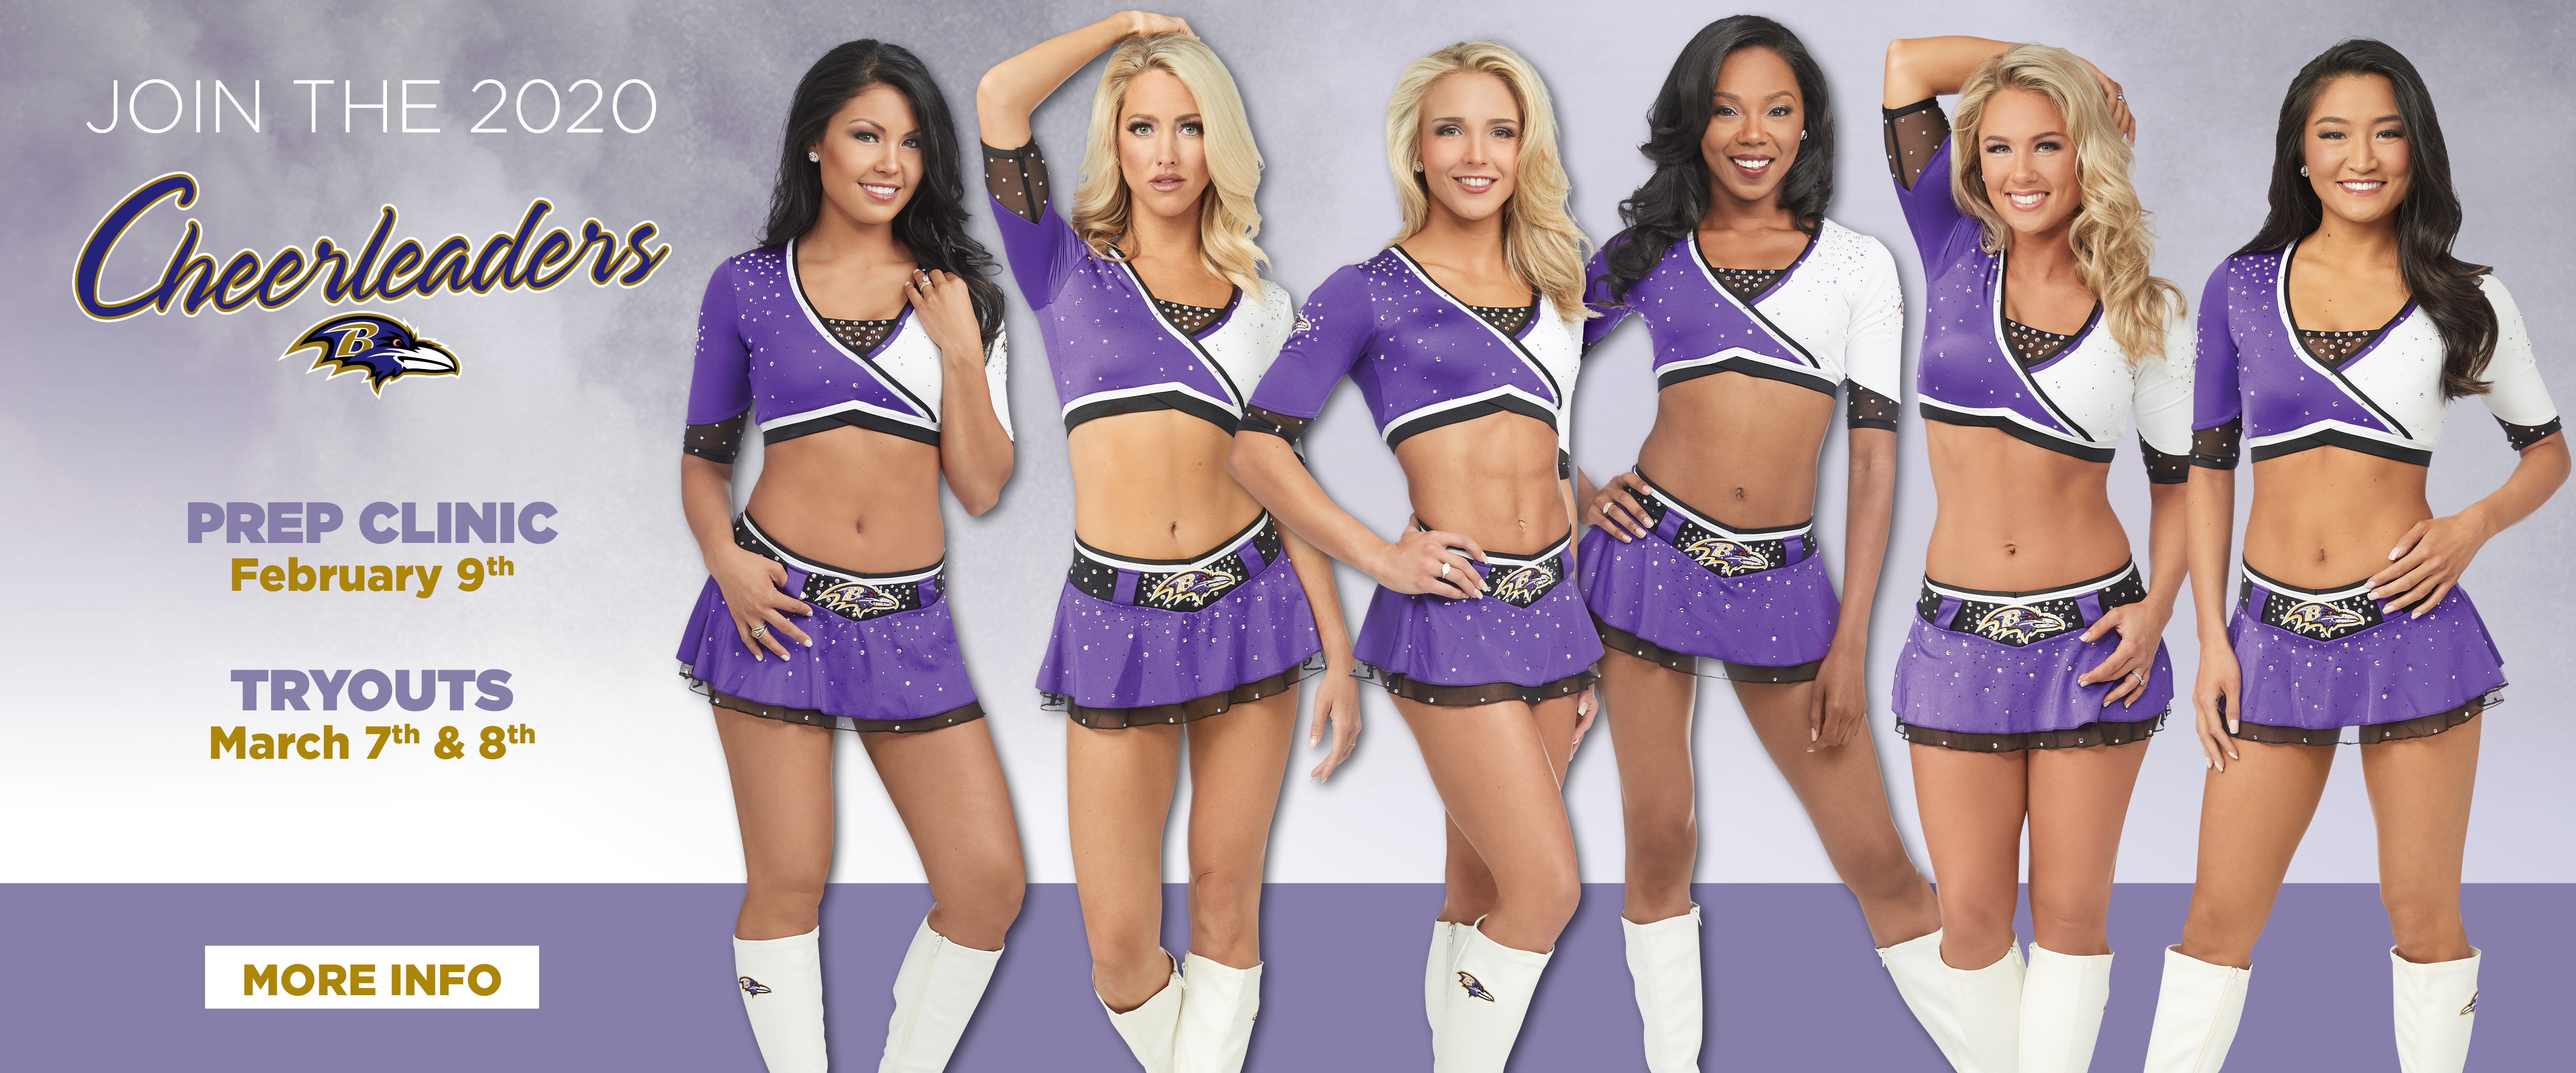 Learn More About Cheerleader Tryouts